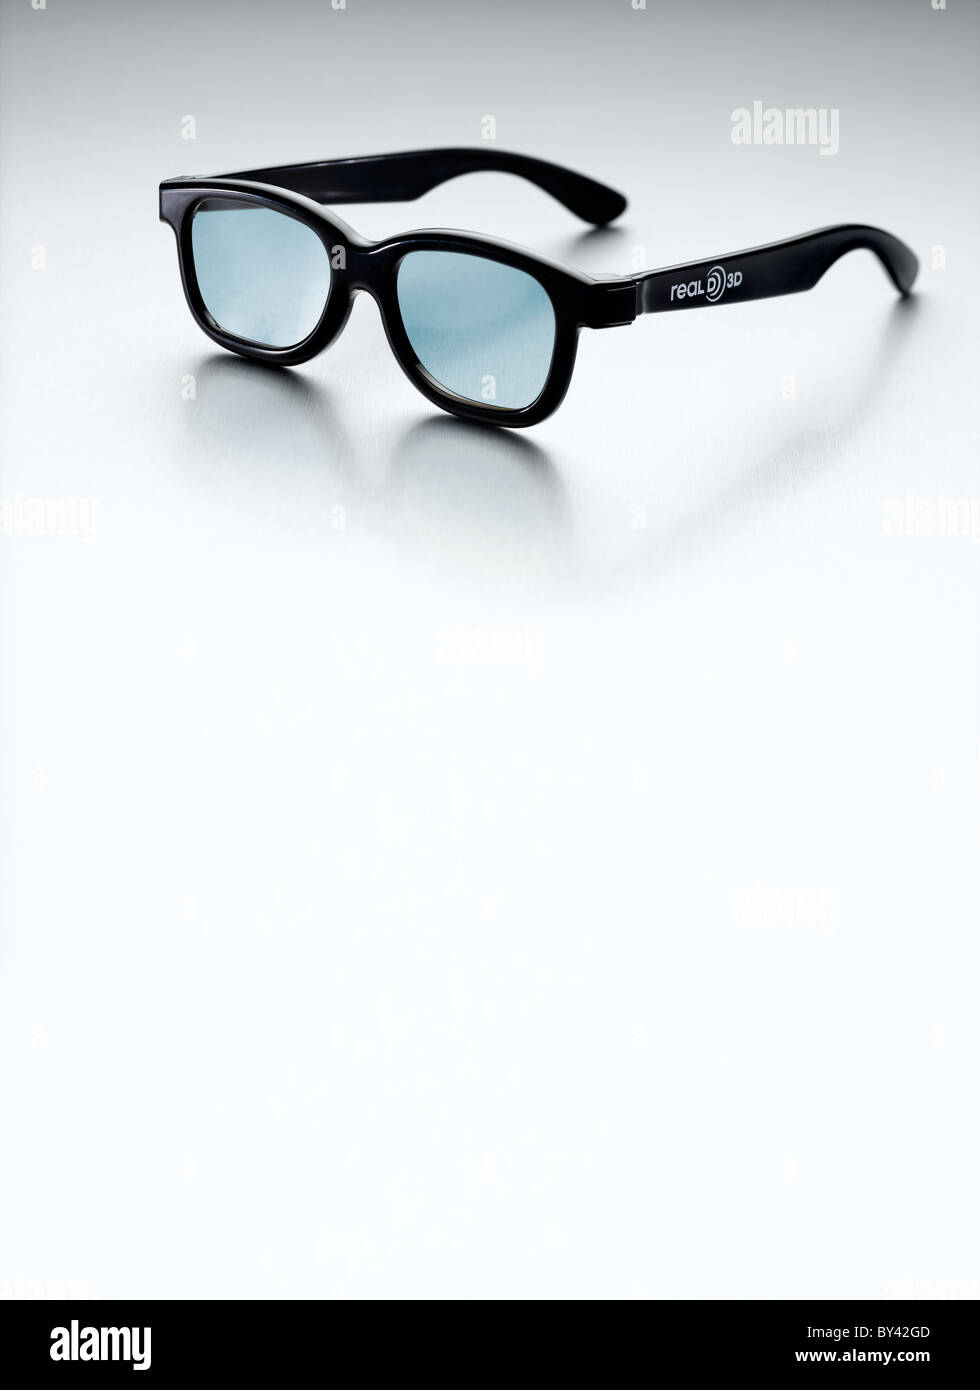 3D Glasses - Stock Image